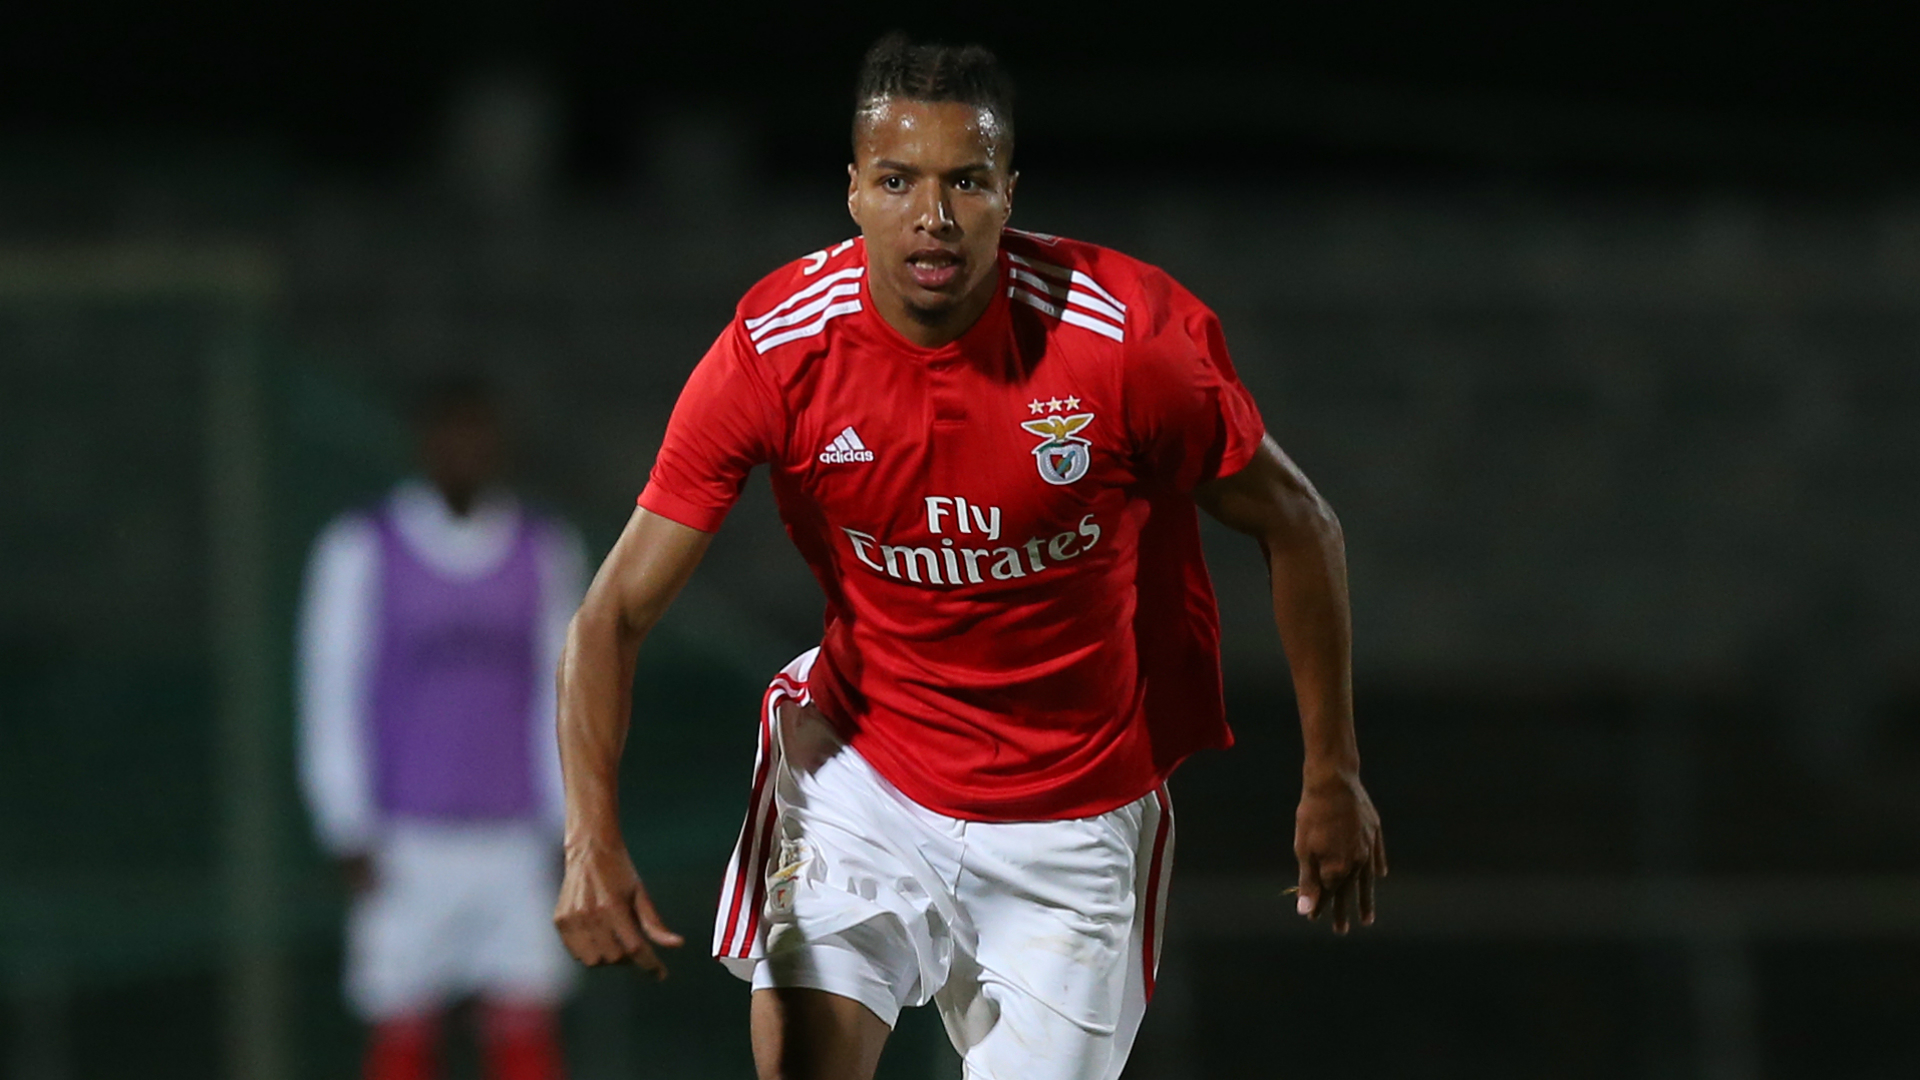 Ebuehi: On-loan Benfica right-back reflects two-year injury layoff